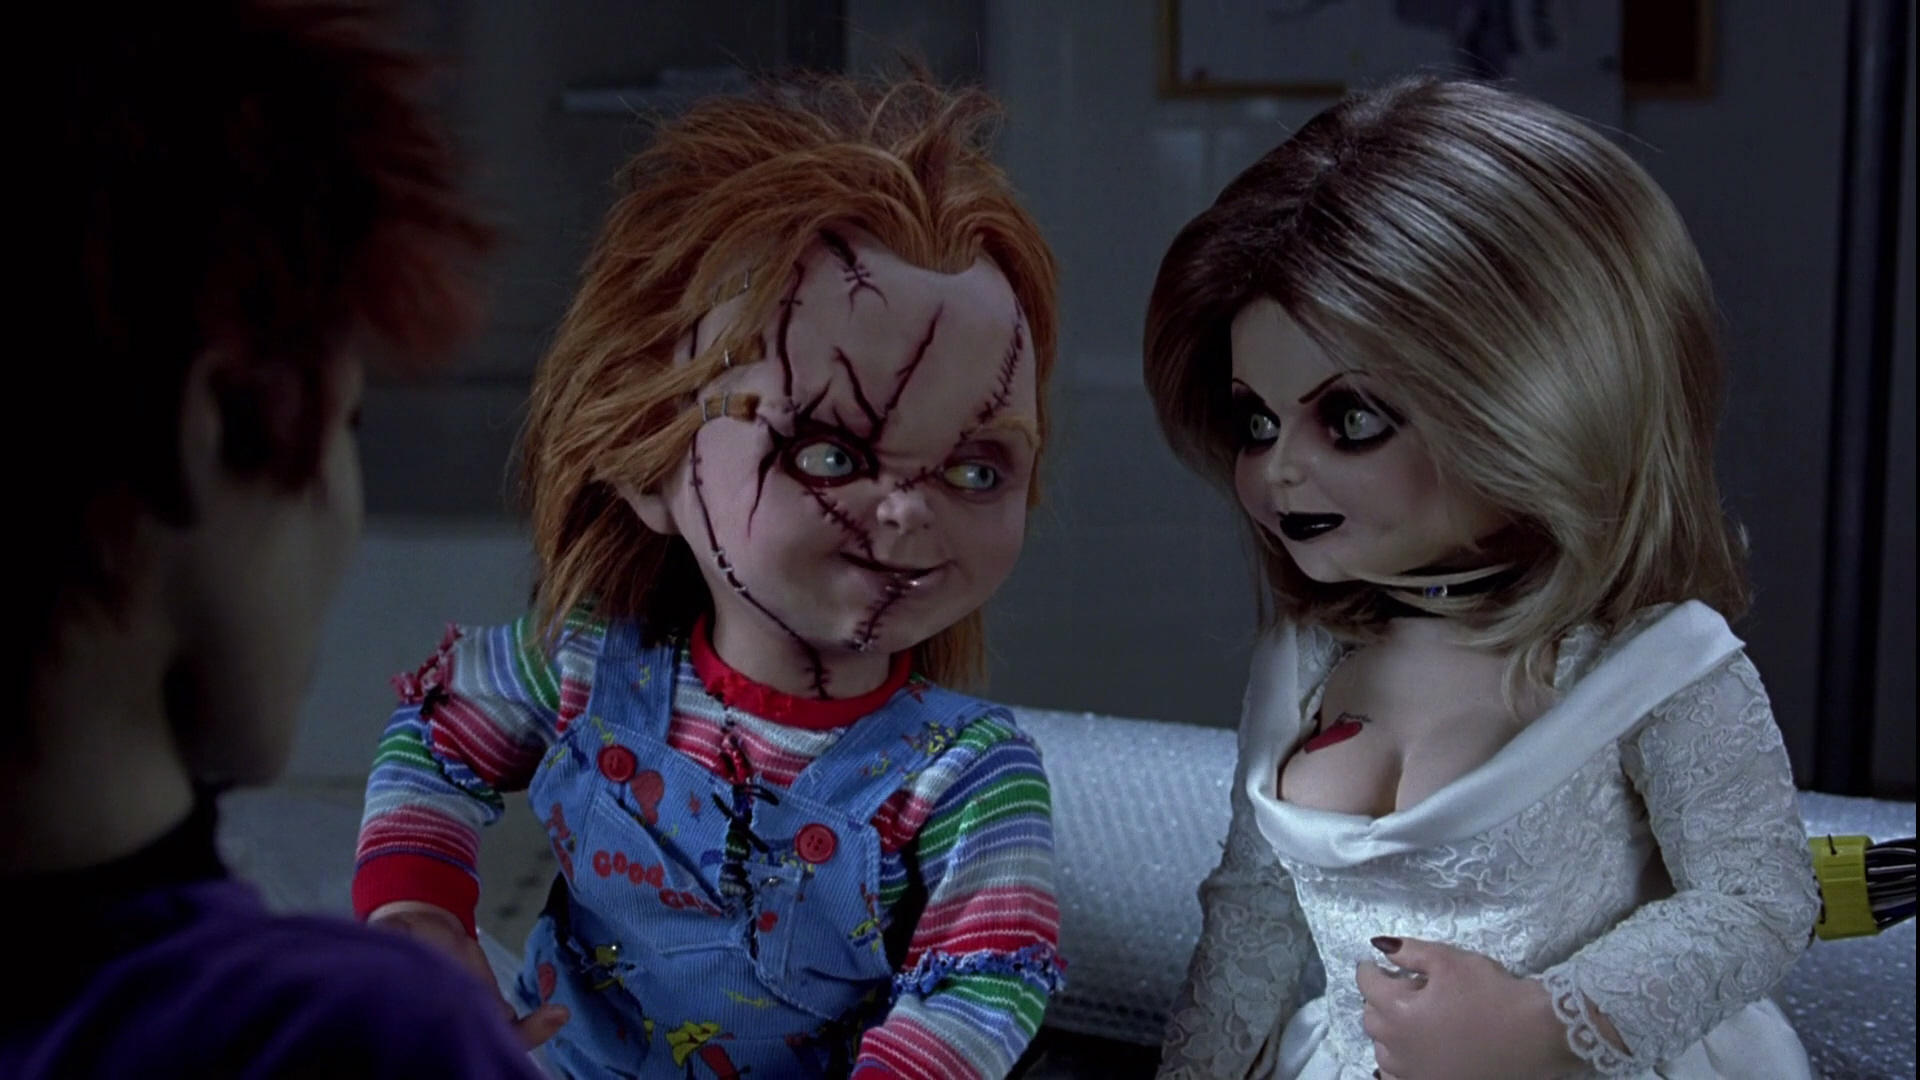 bride of chucky 2 images chucky and his love hd wallpaper and